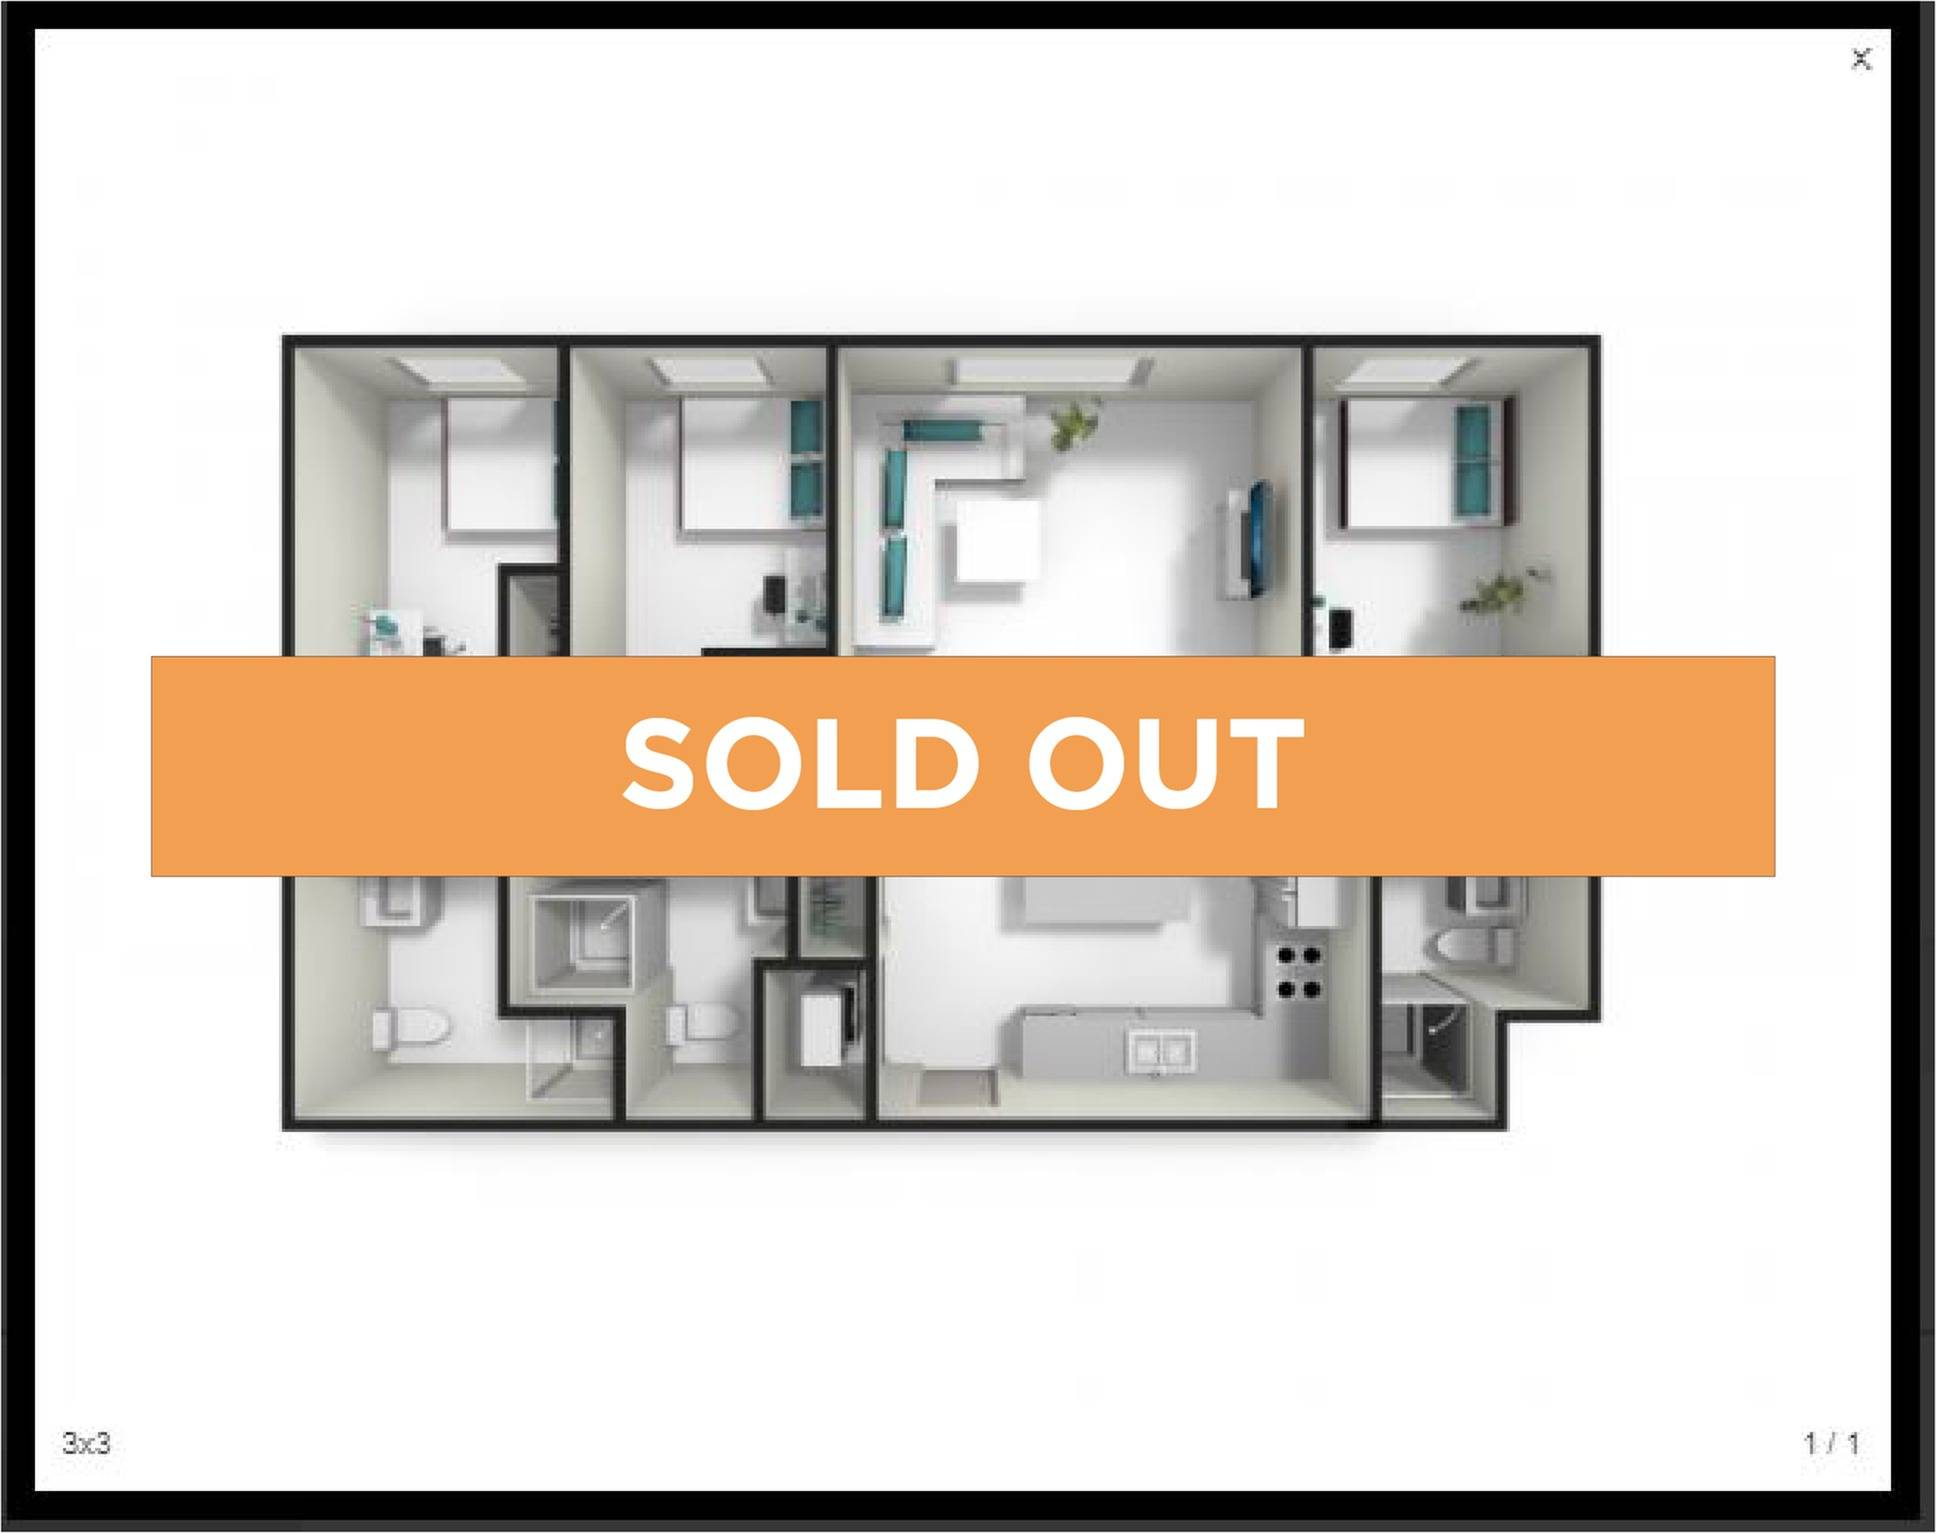 3 Bedroom 3 Bathroom - Sold Out